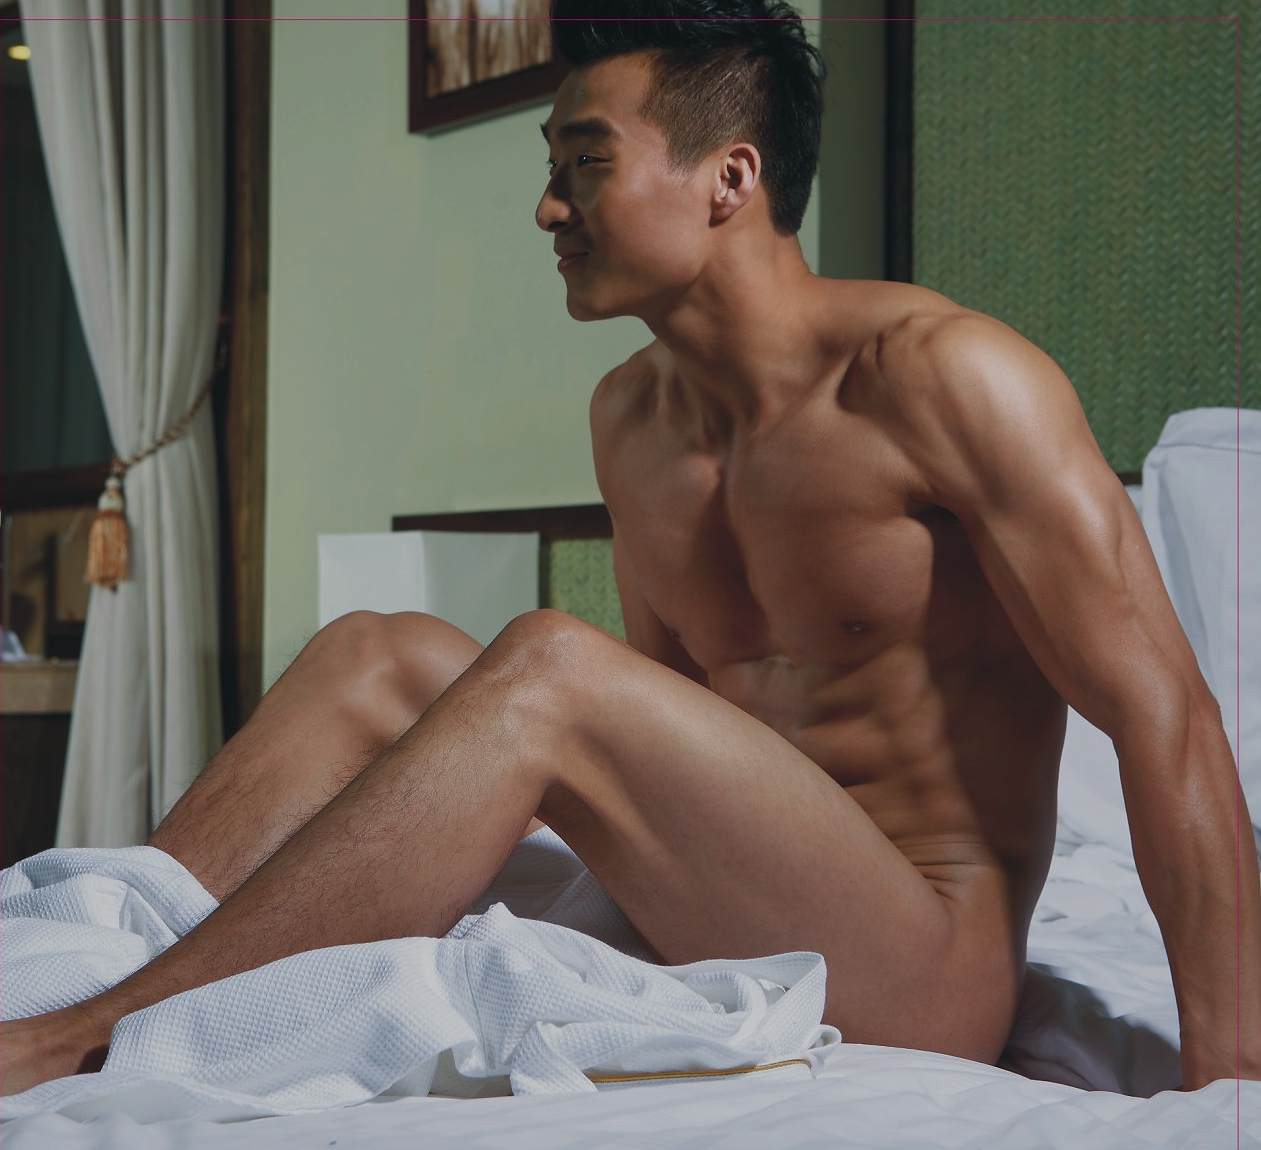 http://1.bp.blogspot.com/-osyVKzu57jQ/ThSjWn5o0LI/AAAAAAAADFA/BZiR24deL2I/s1600/Picture-13-Jin-Xiankui-naked-on-bed-with-great-body.jpg